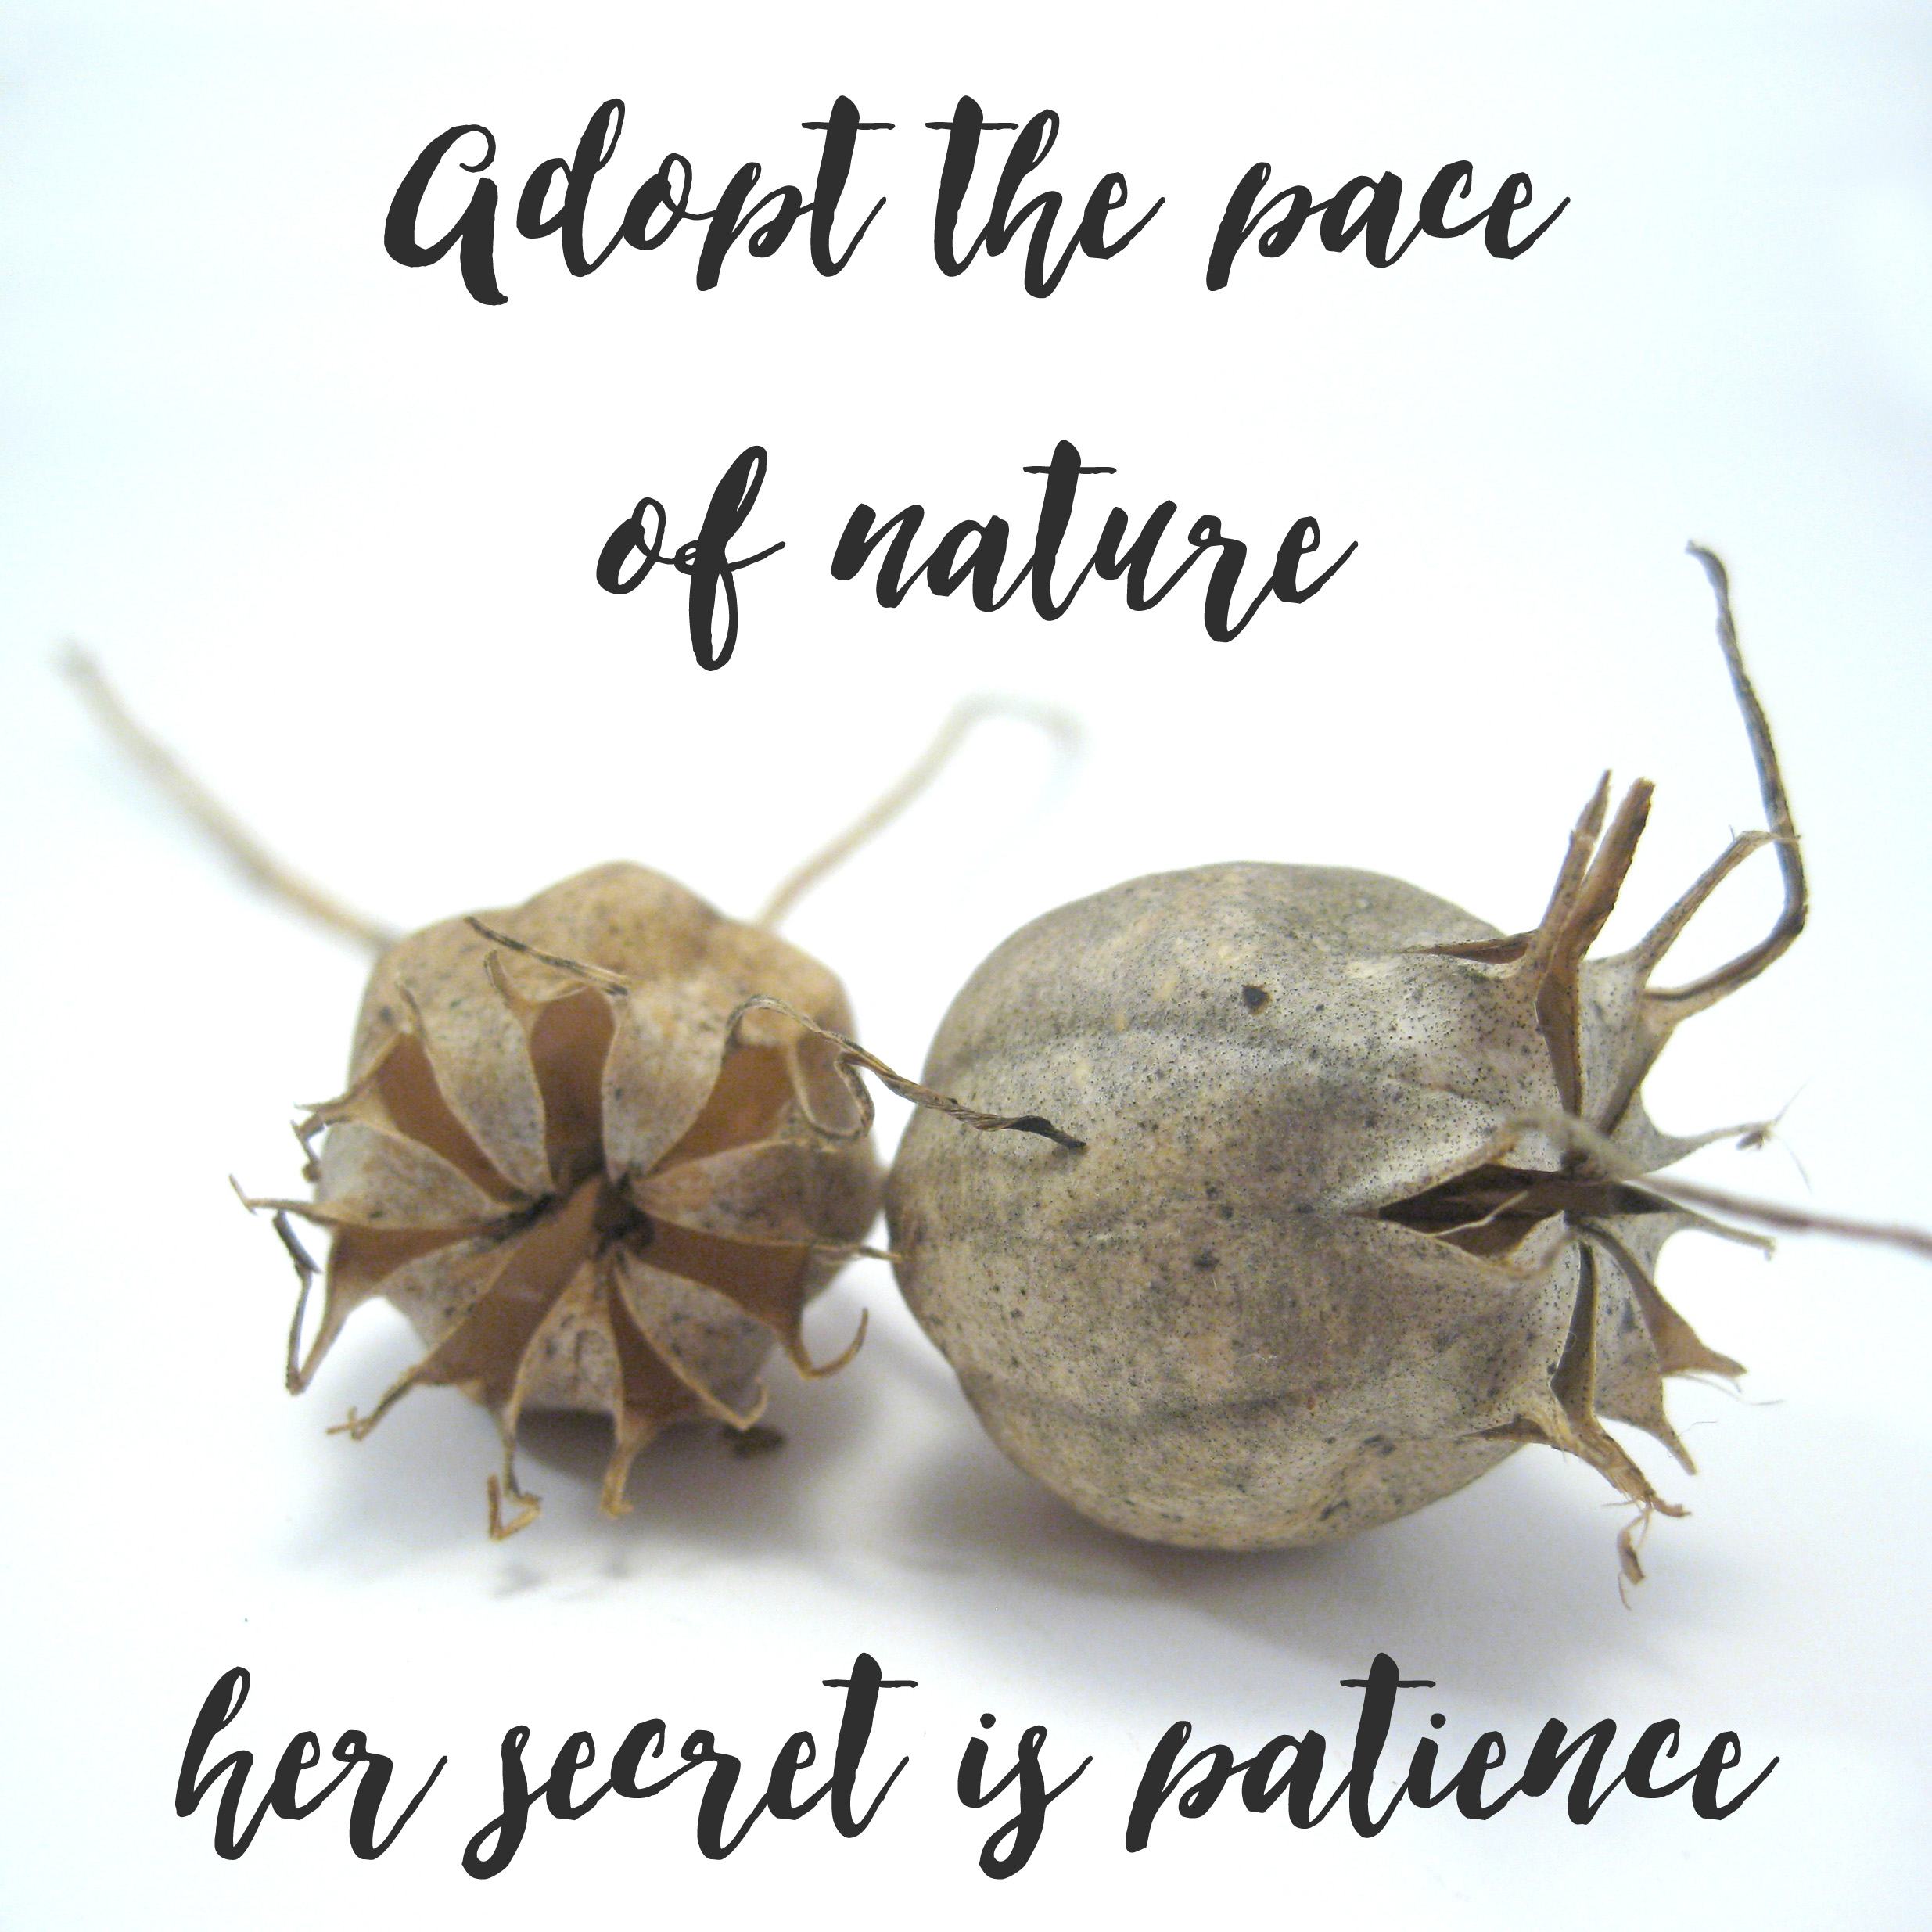 adopt the pace of nature her secret is patience Ralph Waldo Emerson